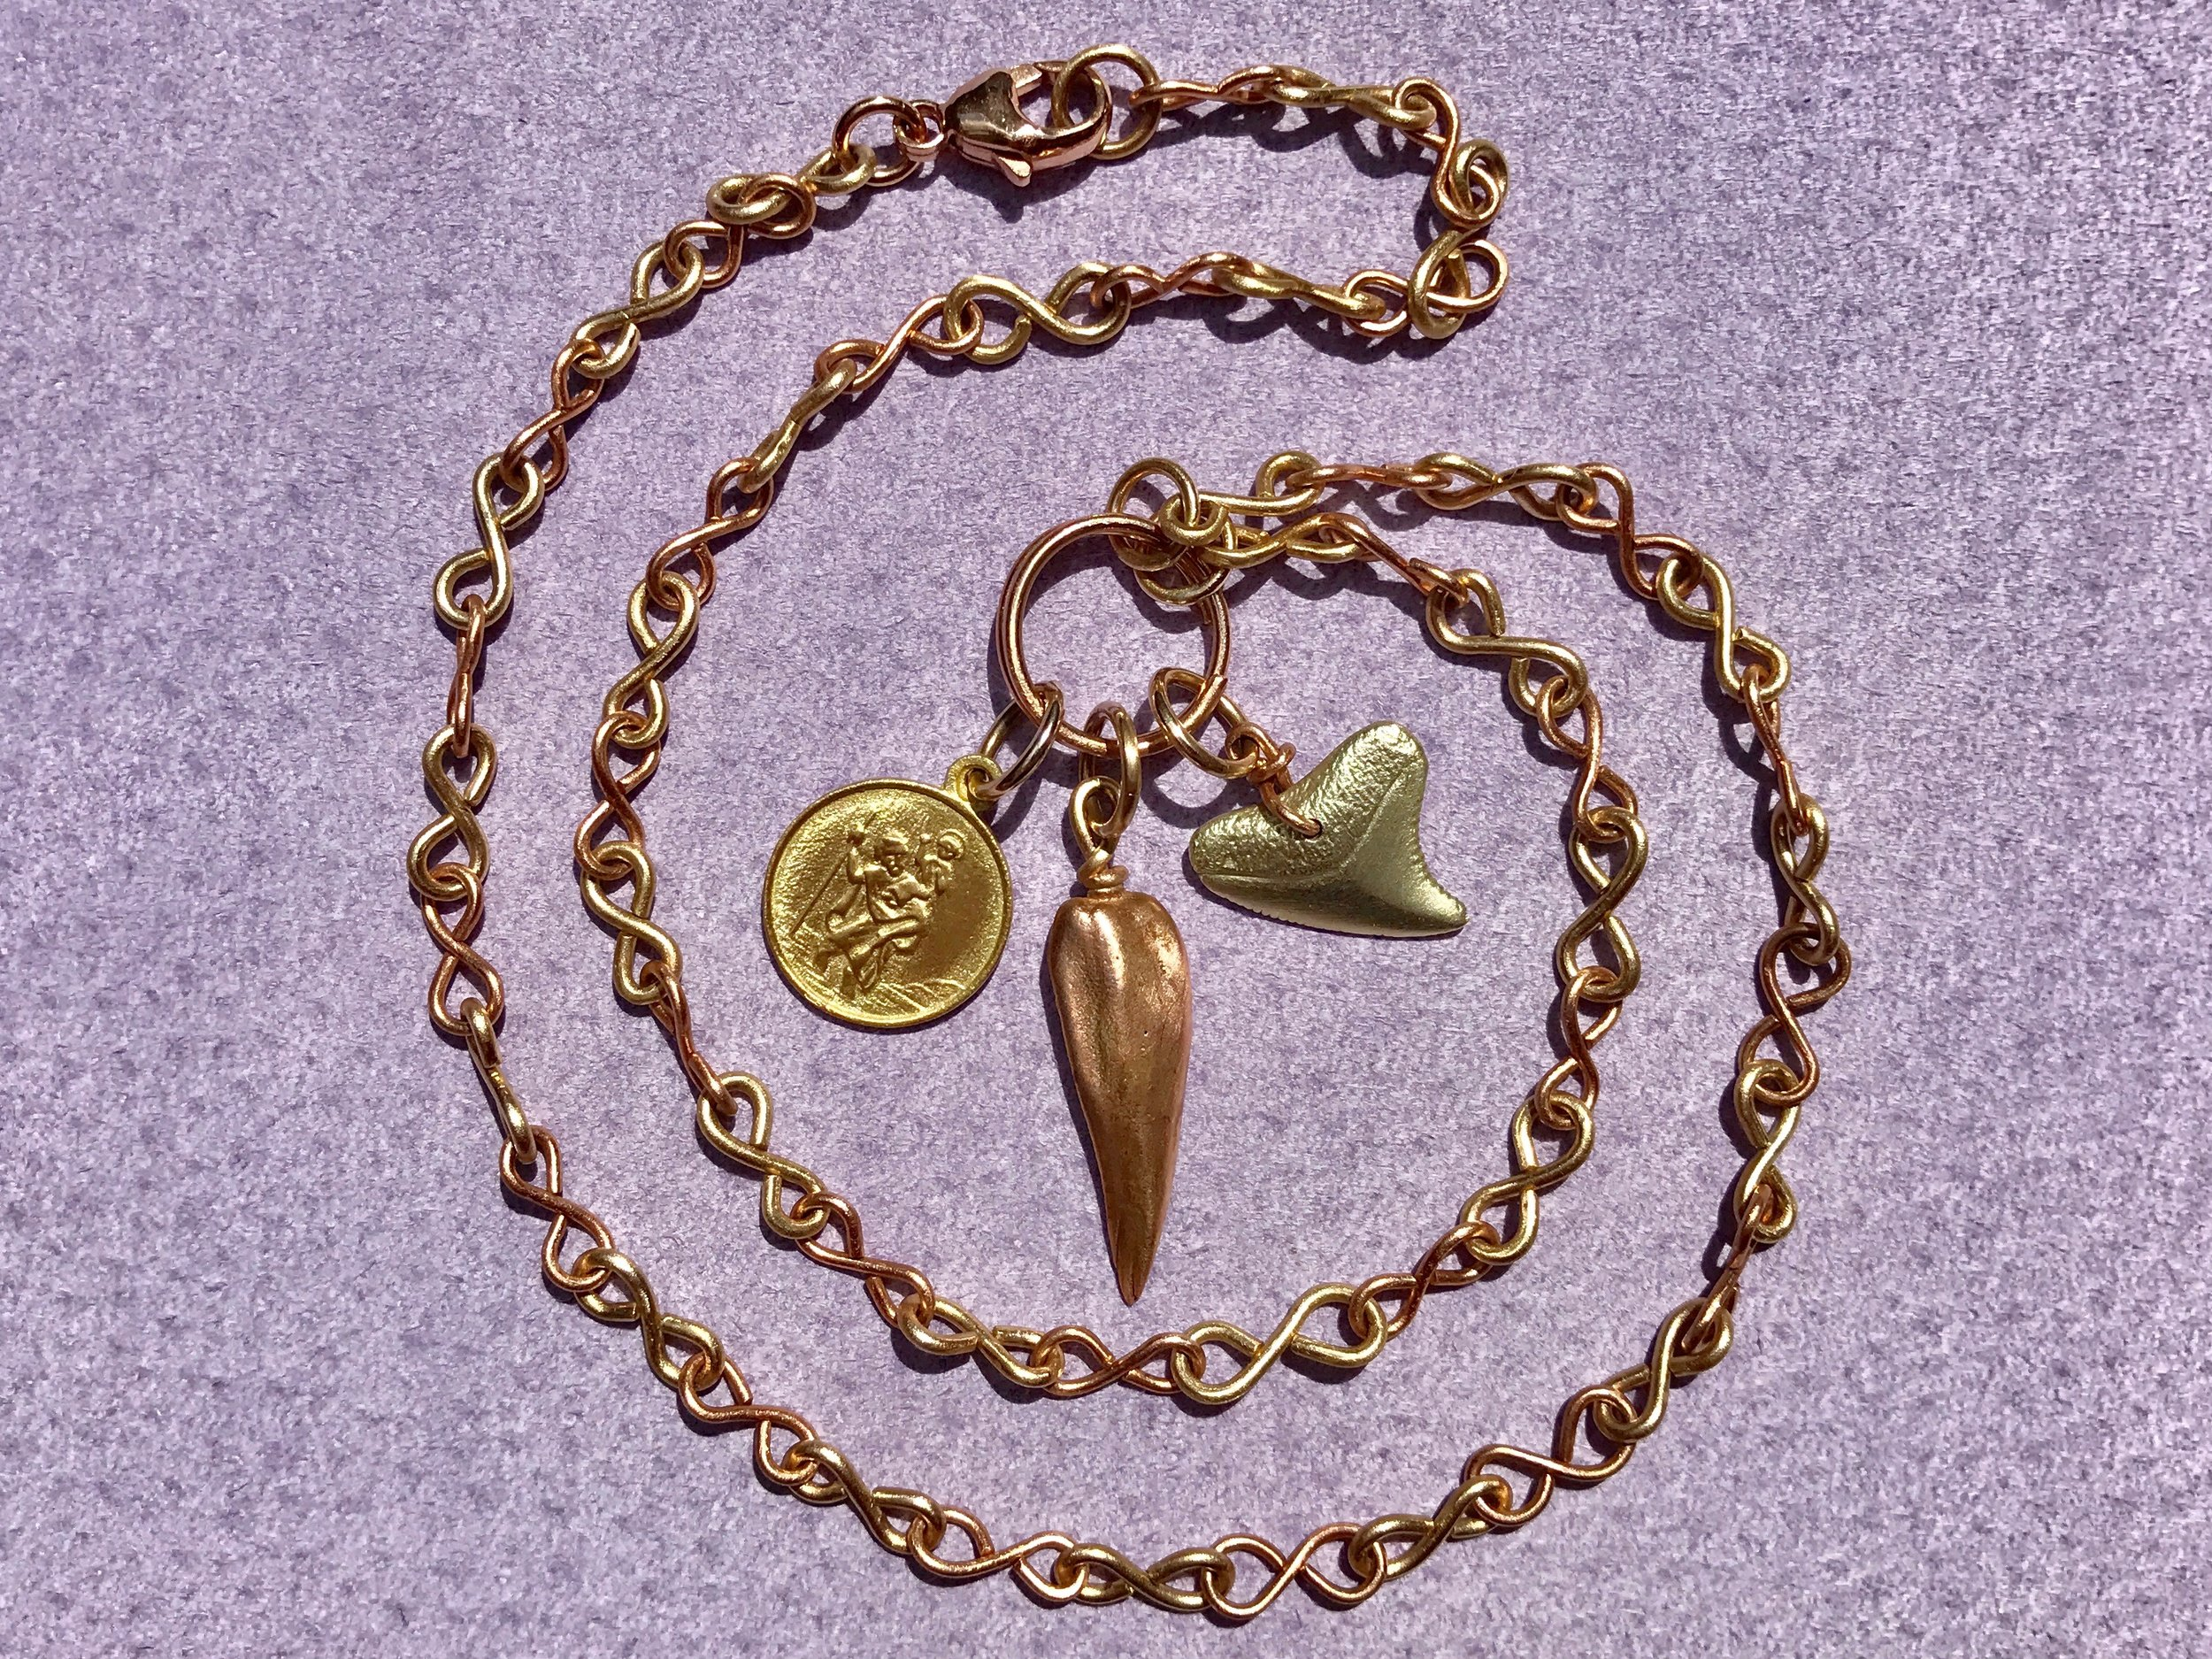 INFINITY CHAIN NECKLACE WITH ST. CHRISTOPHER, MISSISSIPPI CAST PENDANT AND SHARKS TOOTH